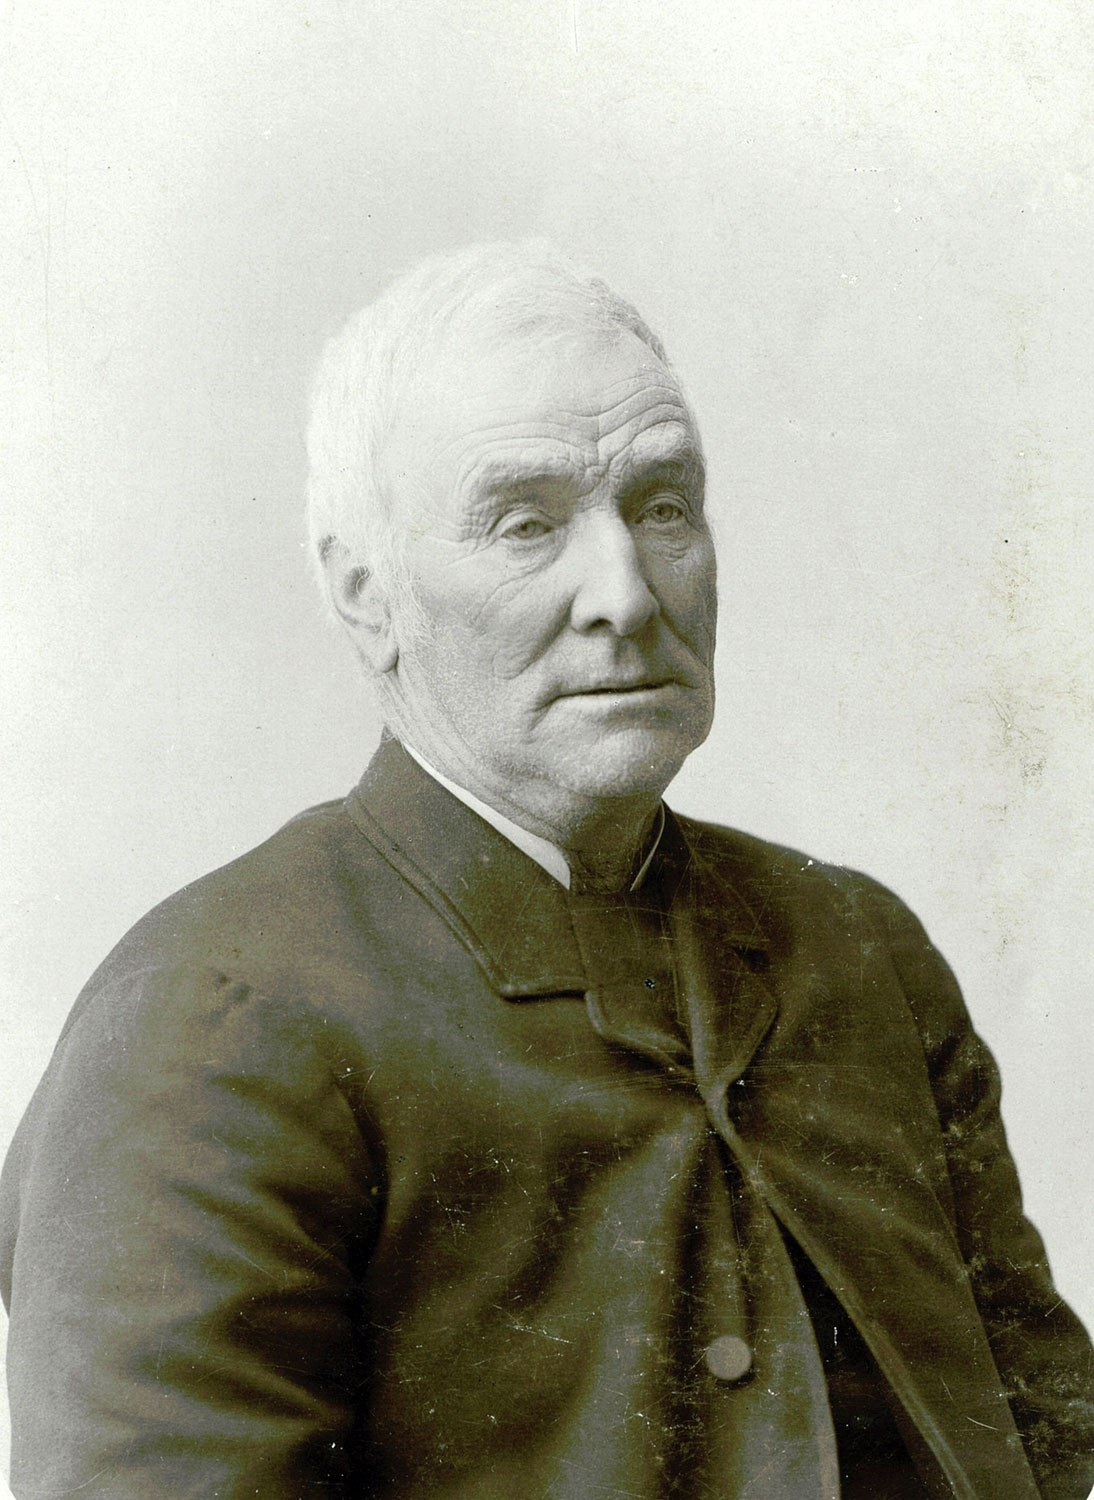 Scottish immigrant John Miller (1817-1904) settled Thistle Ha' farm in 1839. Photo taken circa 1883. (Reproduced with permission from the Thistle Ha' private collection.)